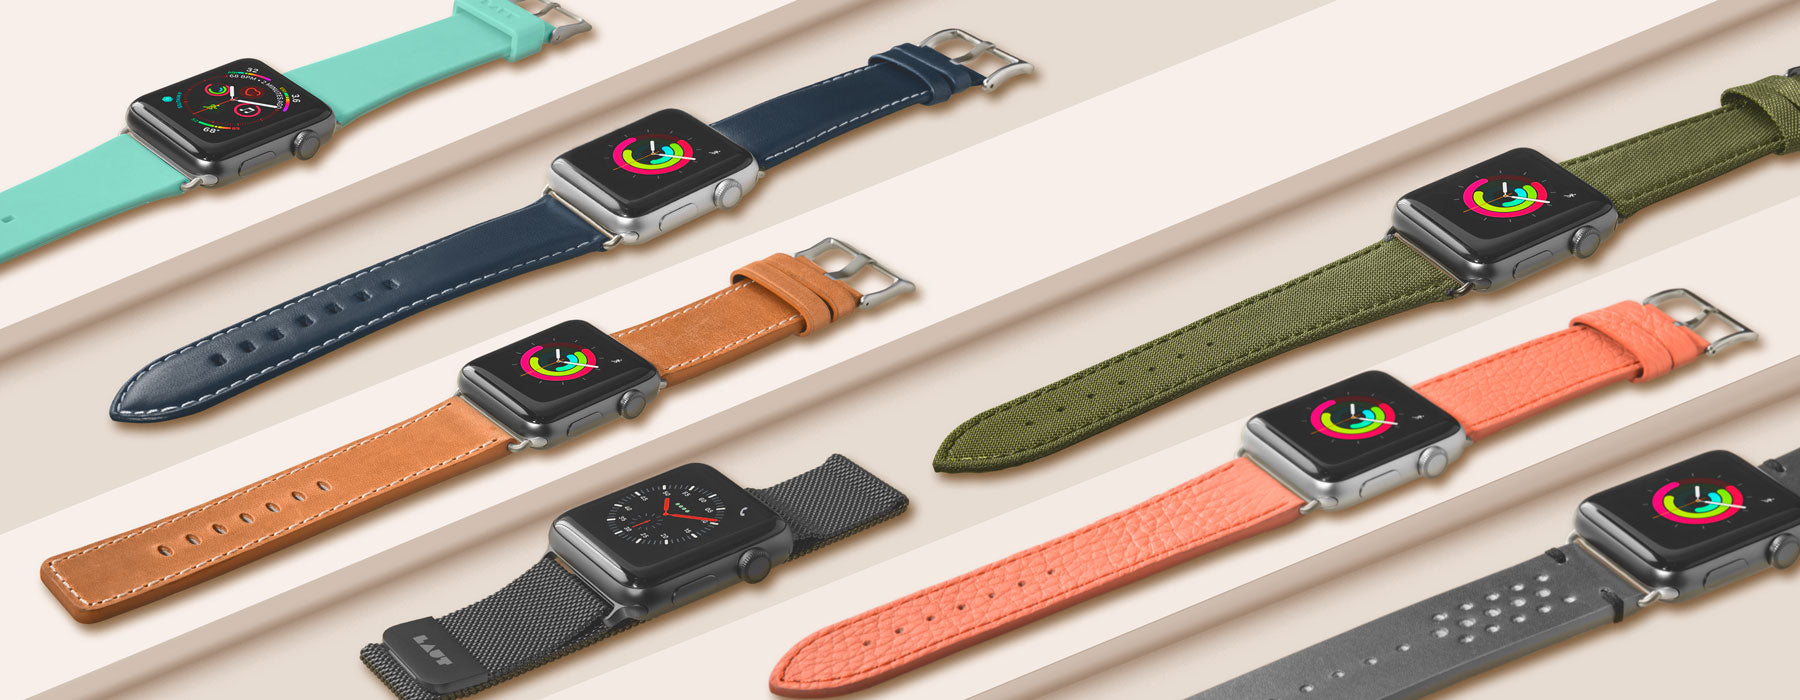 LAUT Unveils Range of Watch Straps for Series 4 Apple Watch at CES 2019